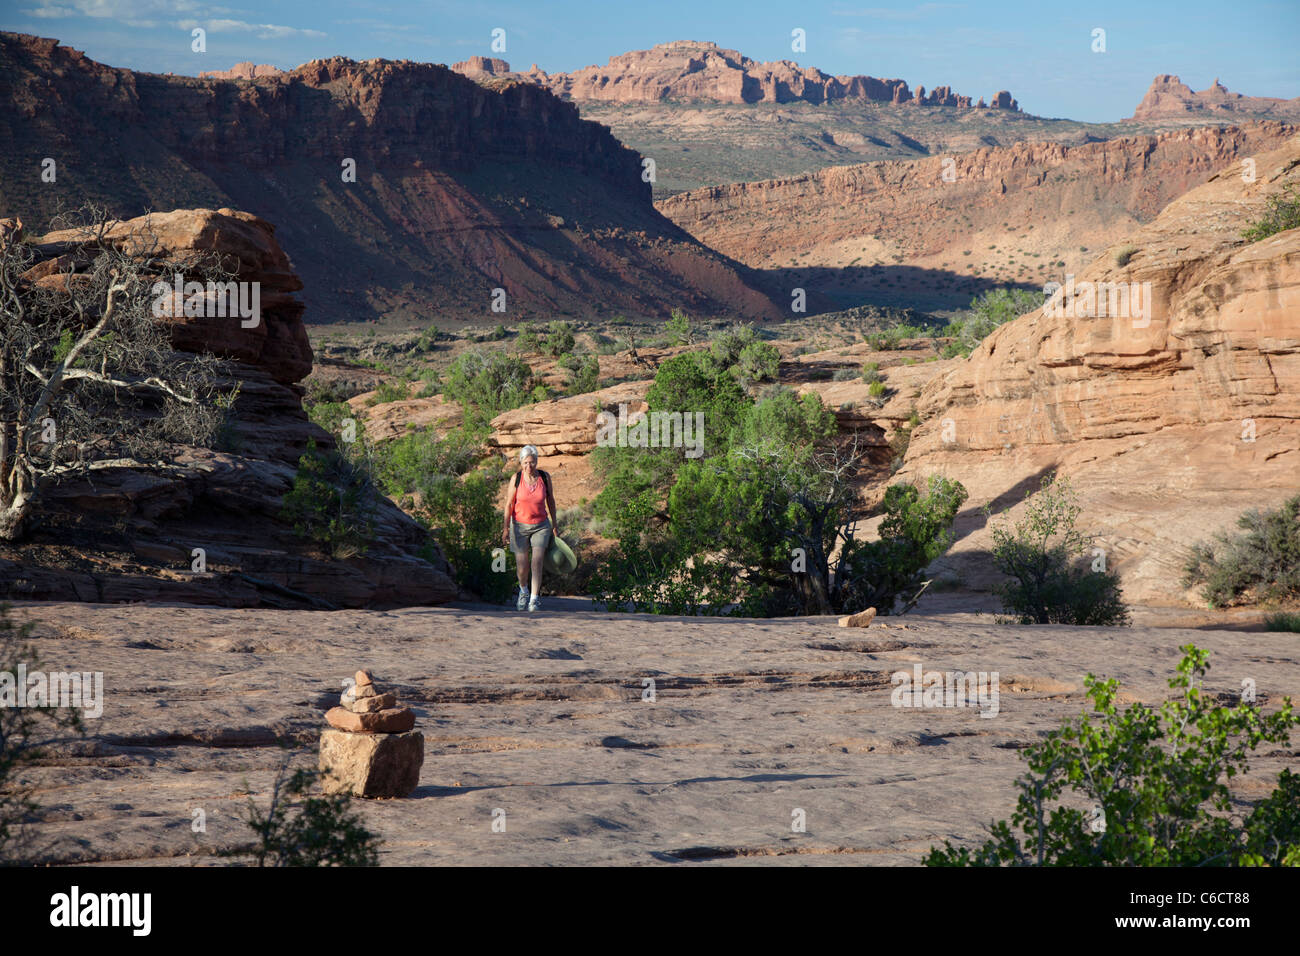 Hiker on Trail to Delicate Arch in Arches National Park - Stock Image